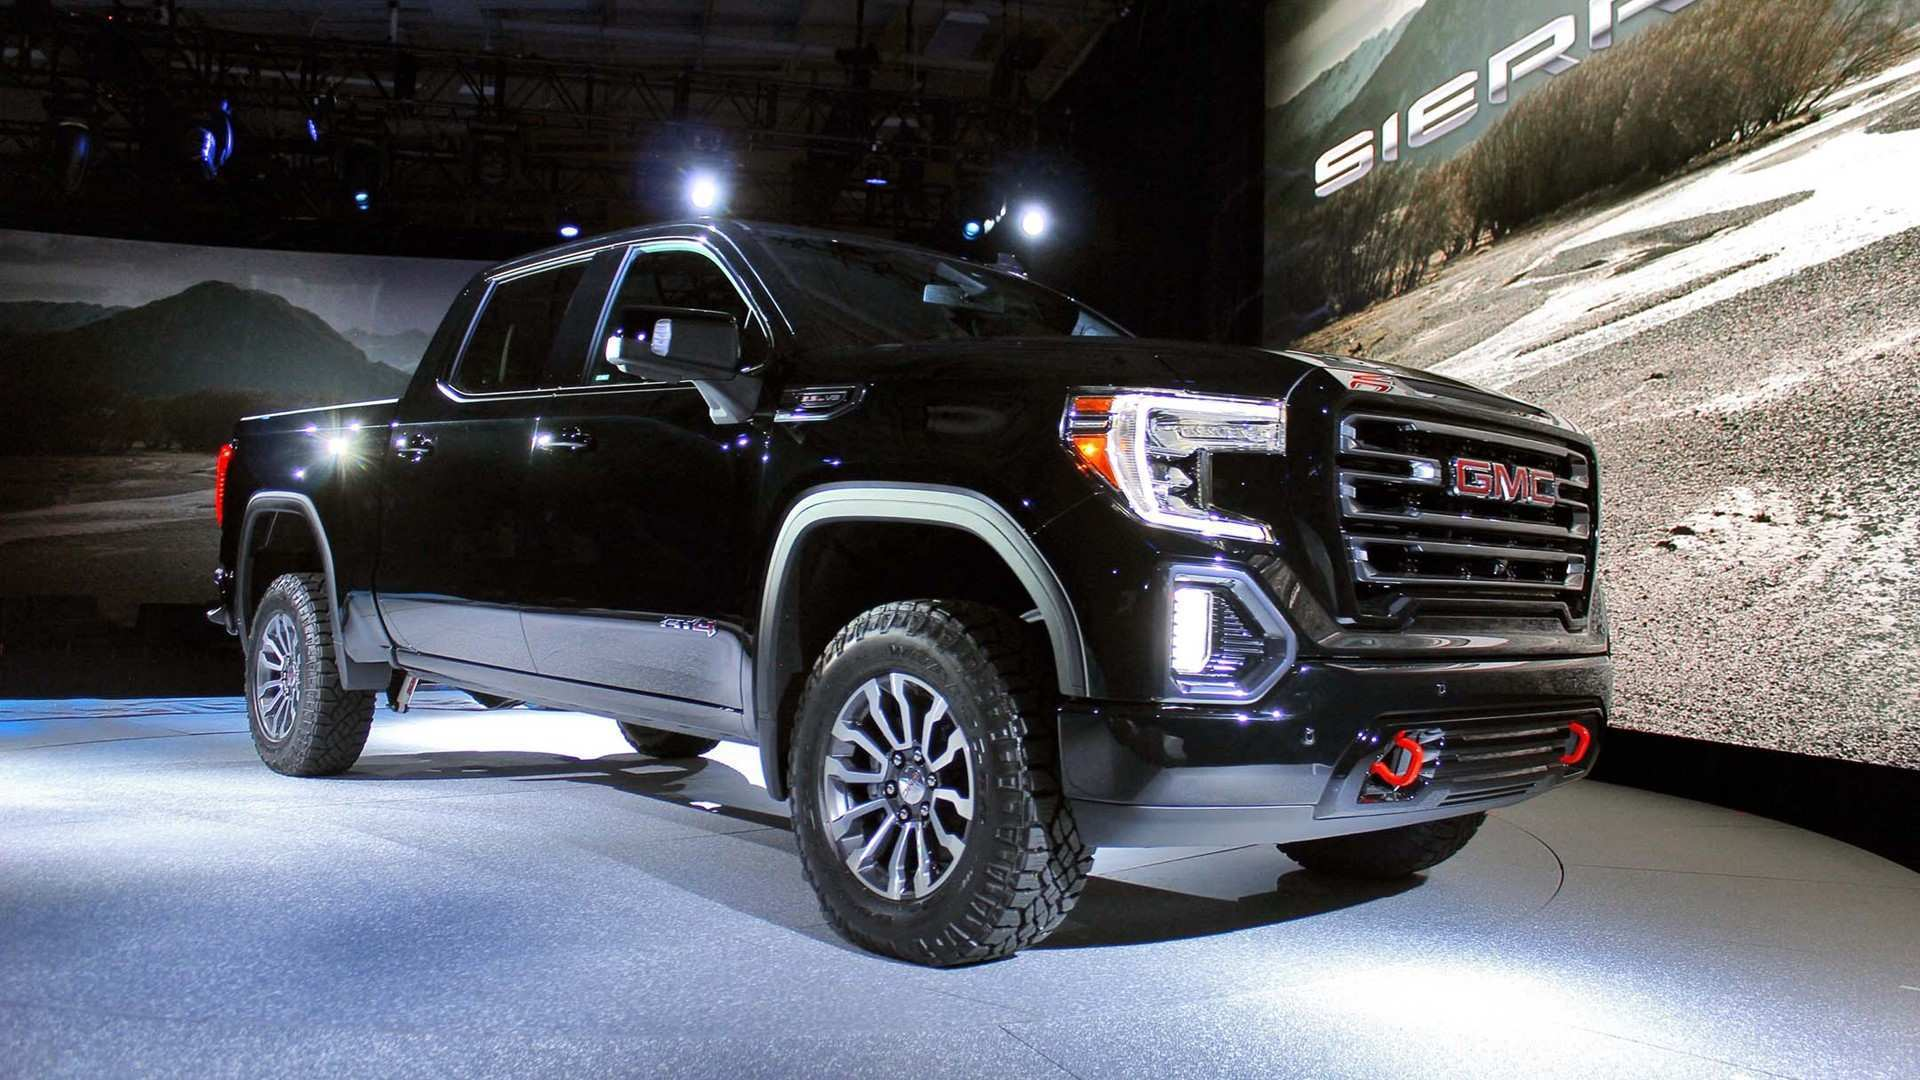 48 The New Colors For 2019 Gmc Terrain Concept Redesign And Review Model by New Colors For 2019 Gmc Terrain Concept Redesign And Review